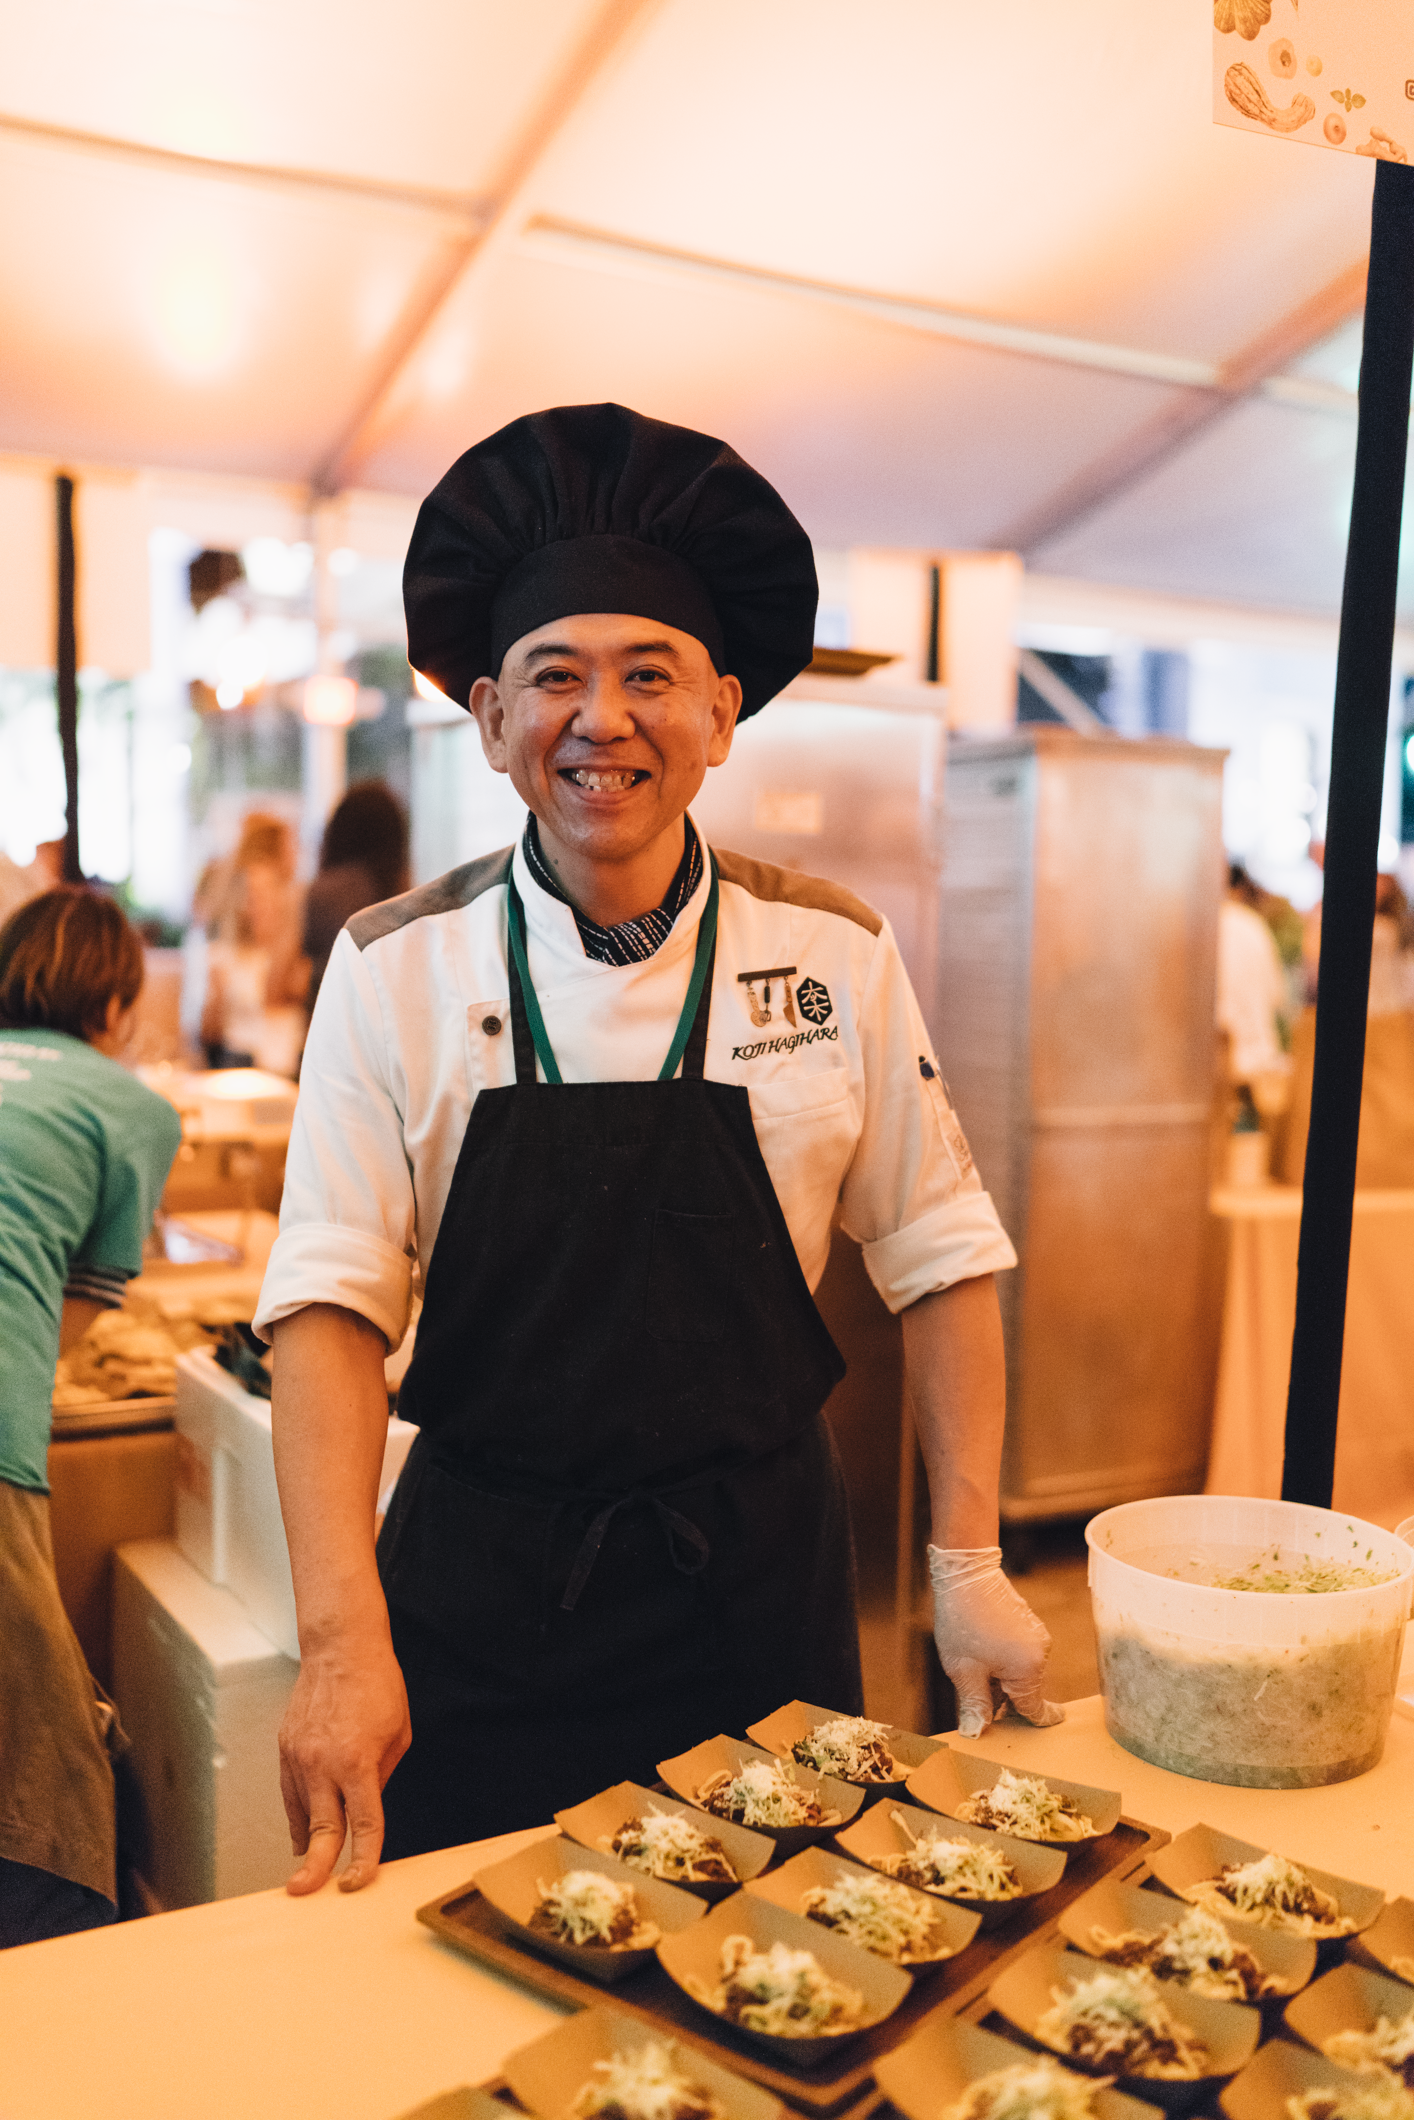 Meet local executive chefs and try their newest creations at the 23rd Annual Harvest in the Square.